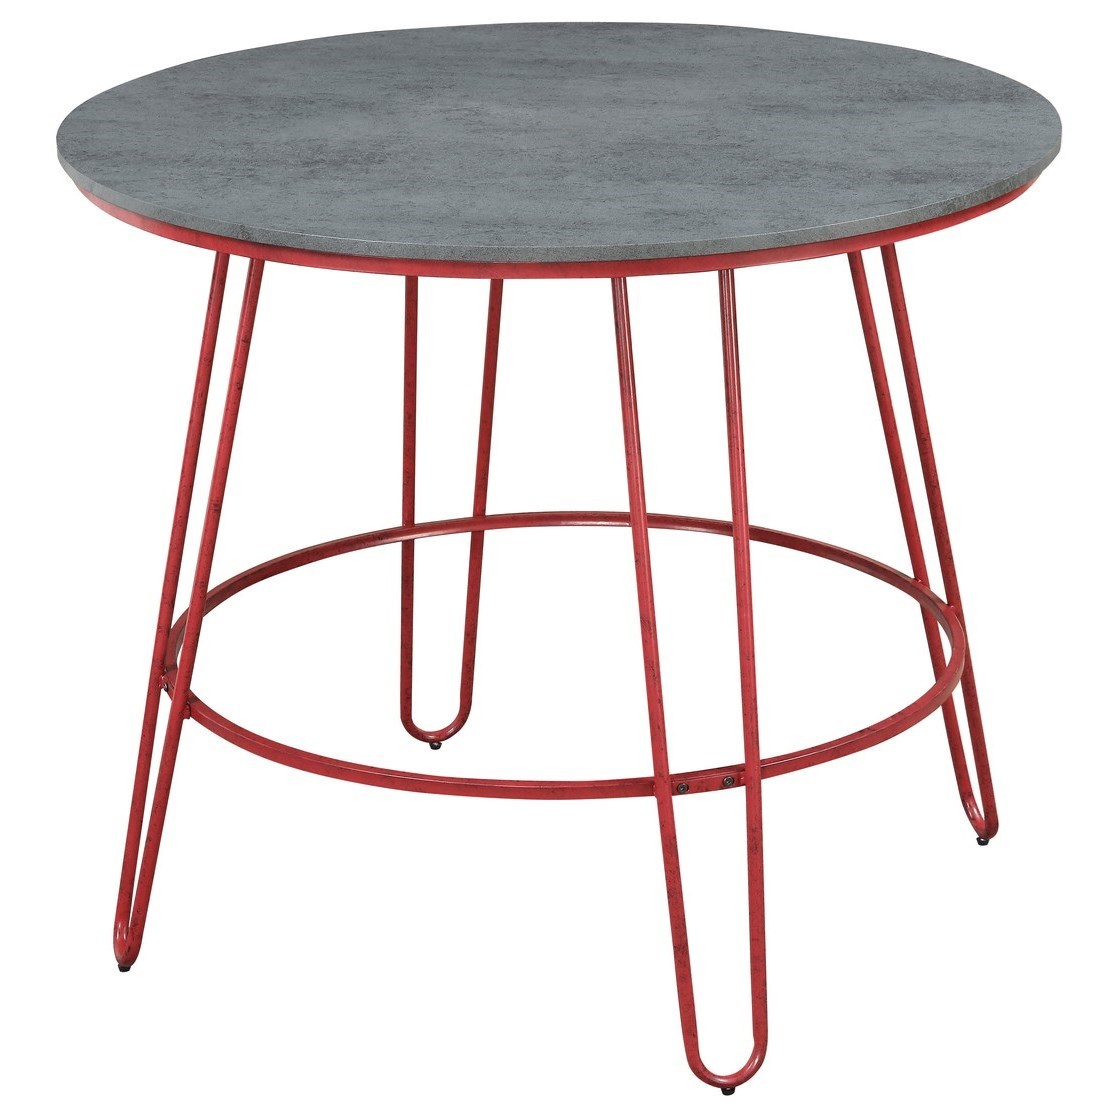 Langston 42'' Round Pub Table by Emerald at Northeast Factory Direct